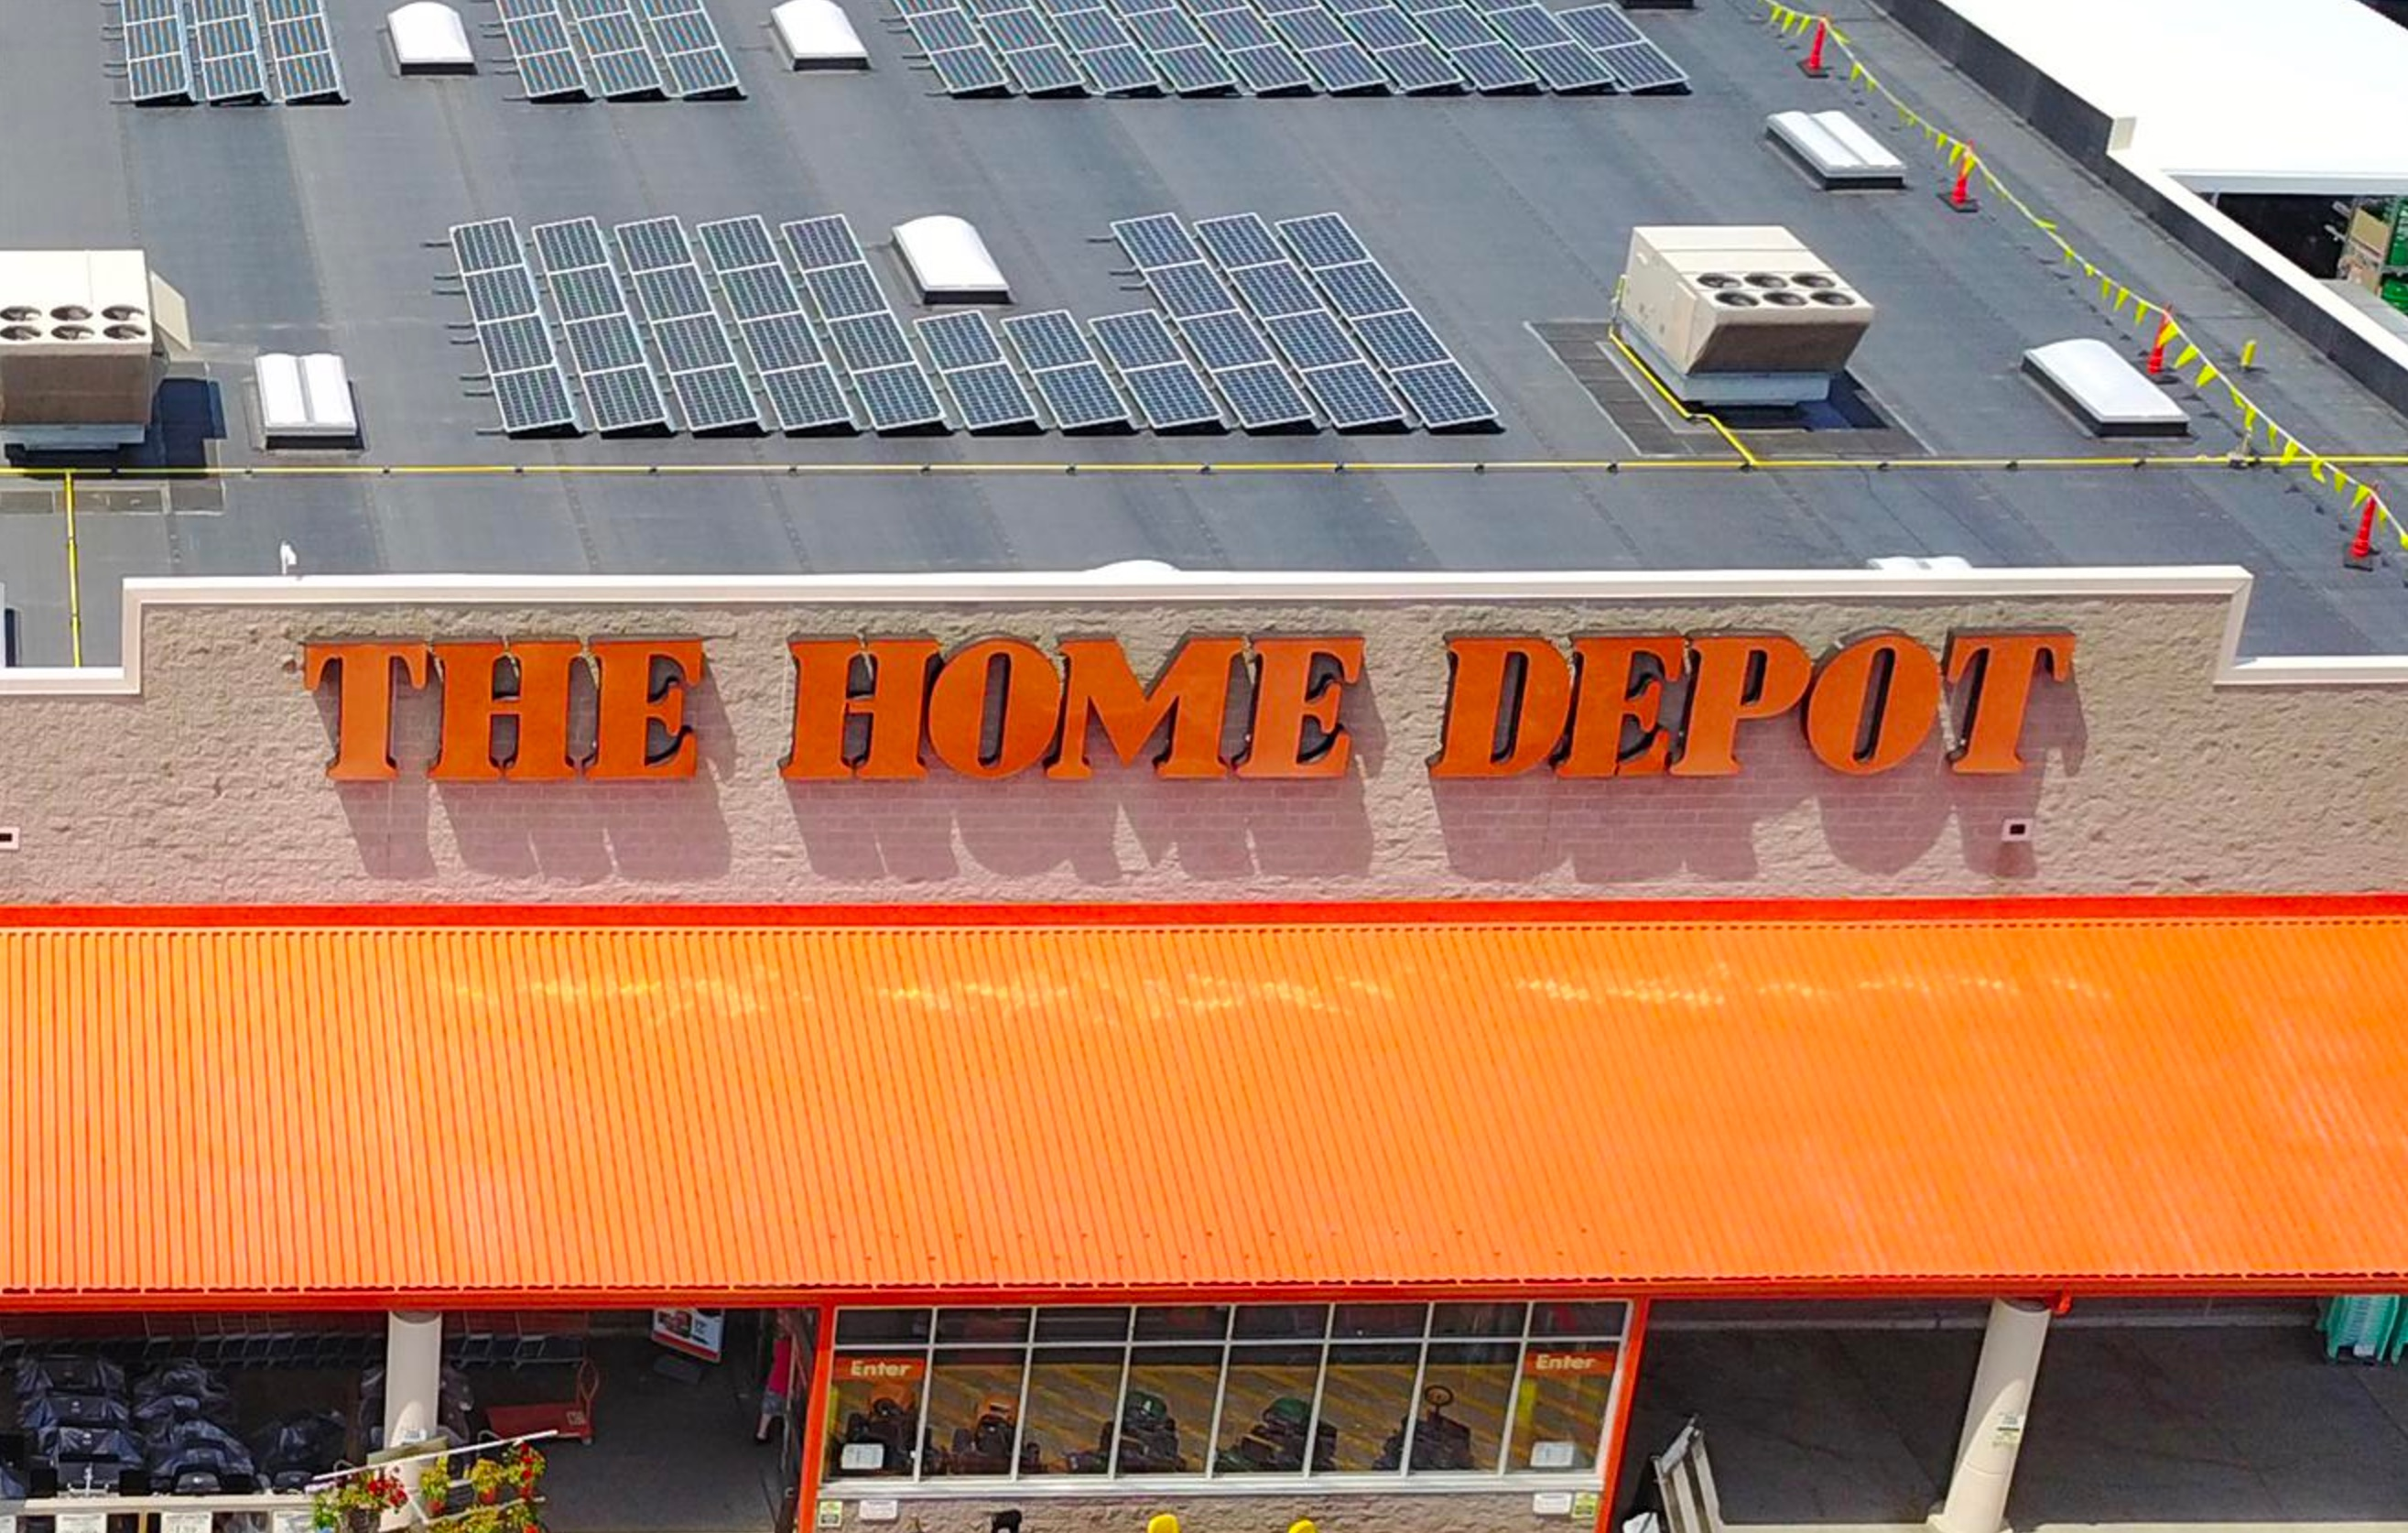 Tesla To End Home Depot Partnership As It Closes 12 Solar Facilities: Report